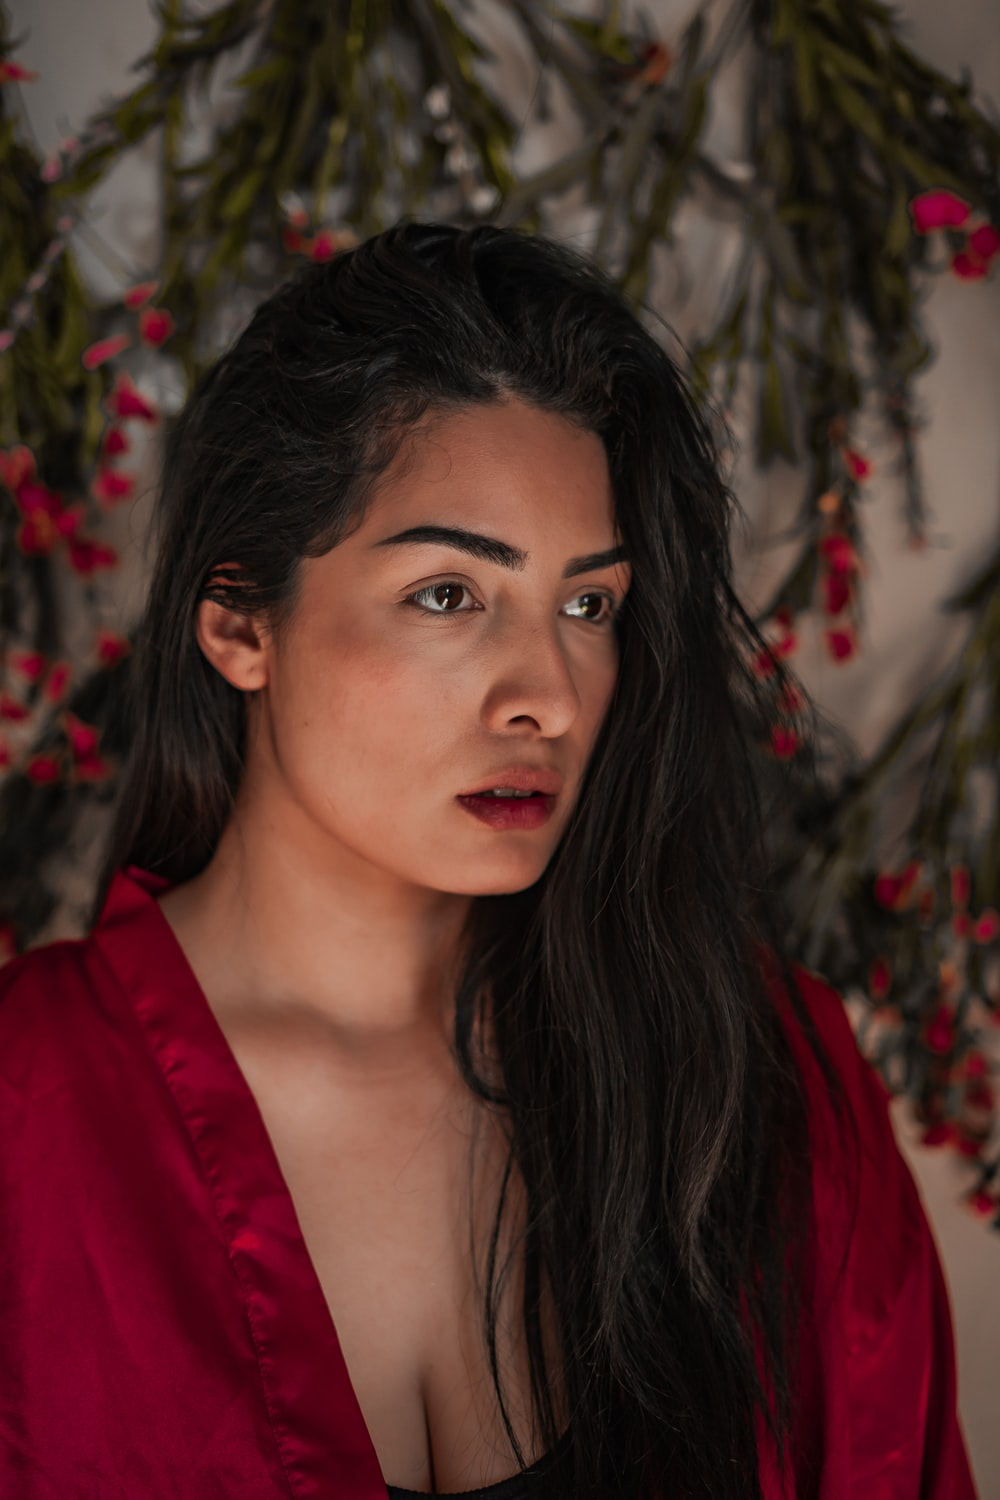 woman in red shirt with black hair